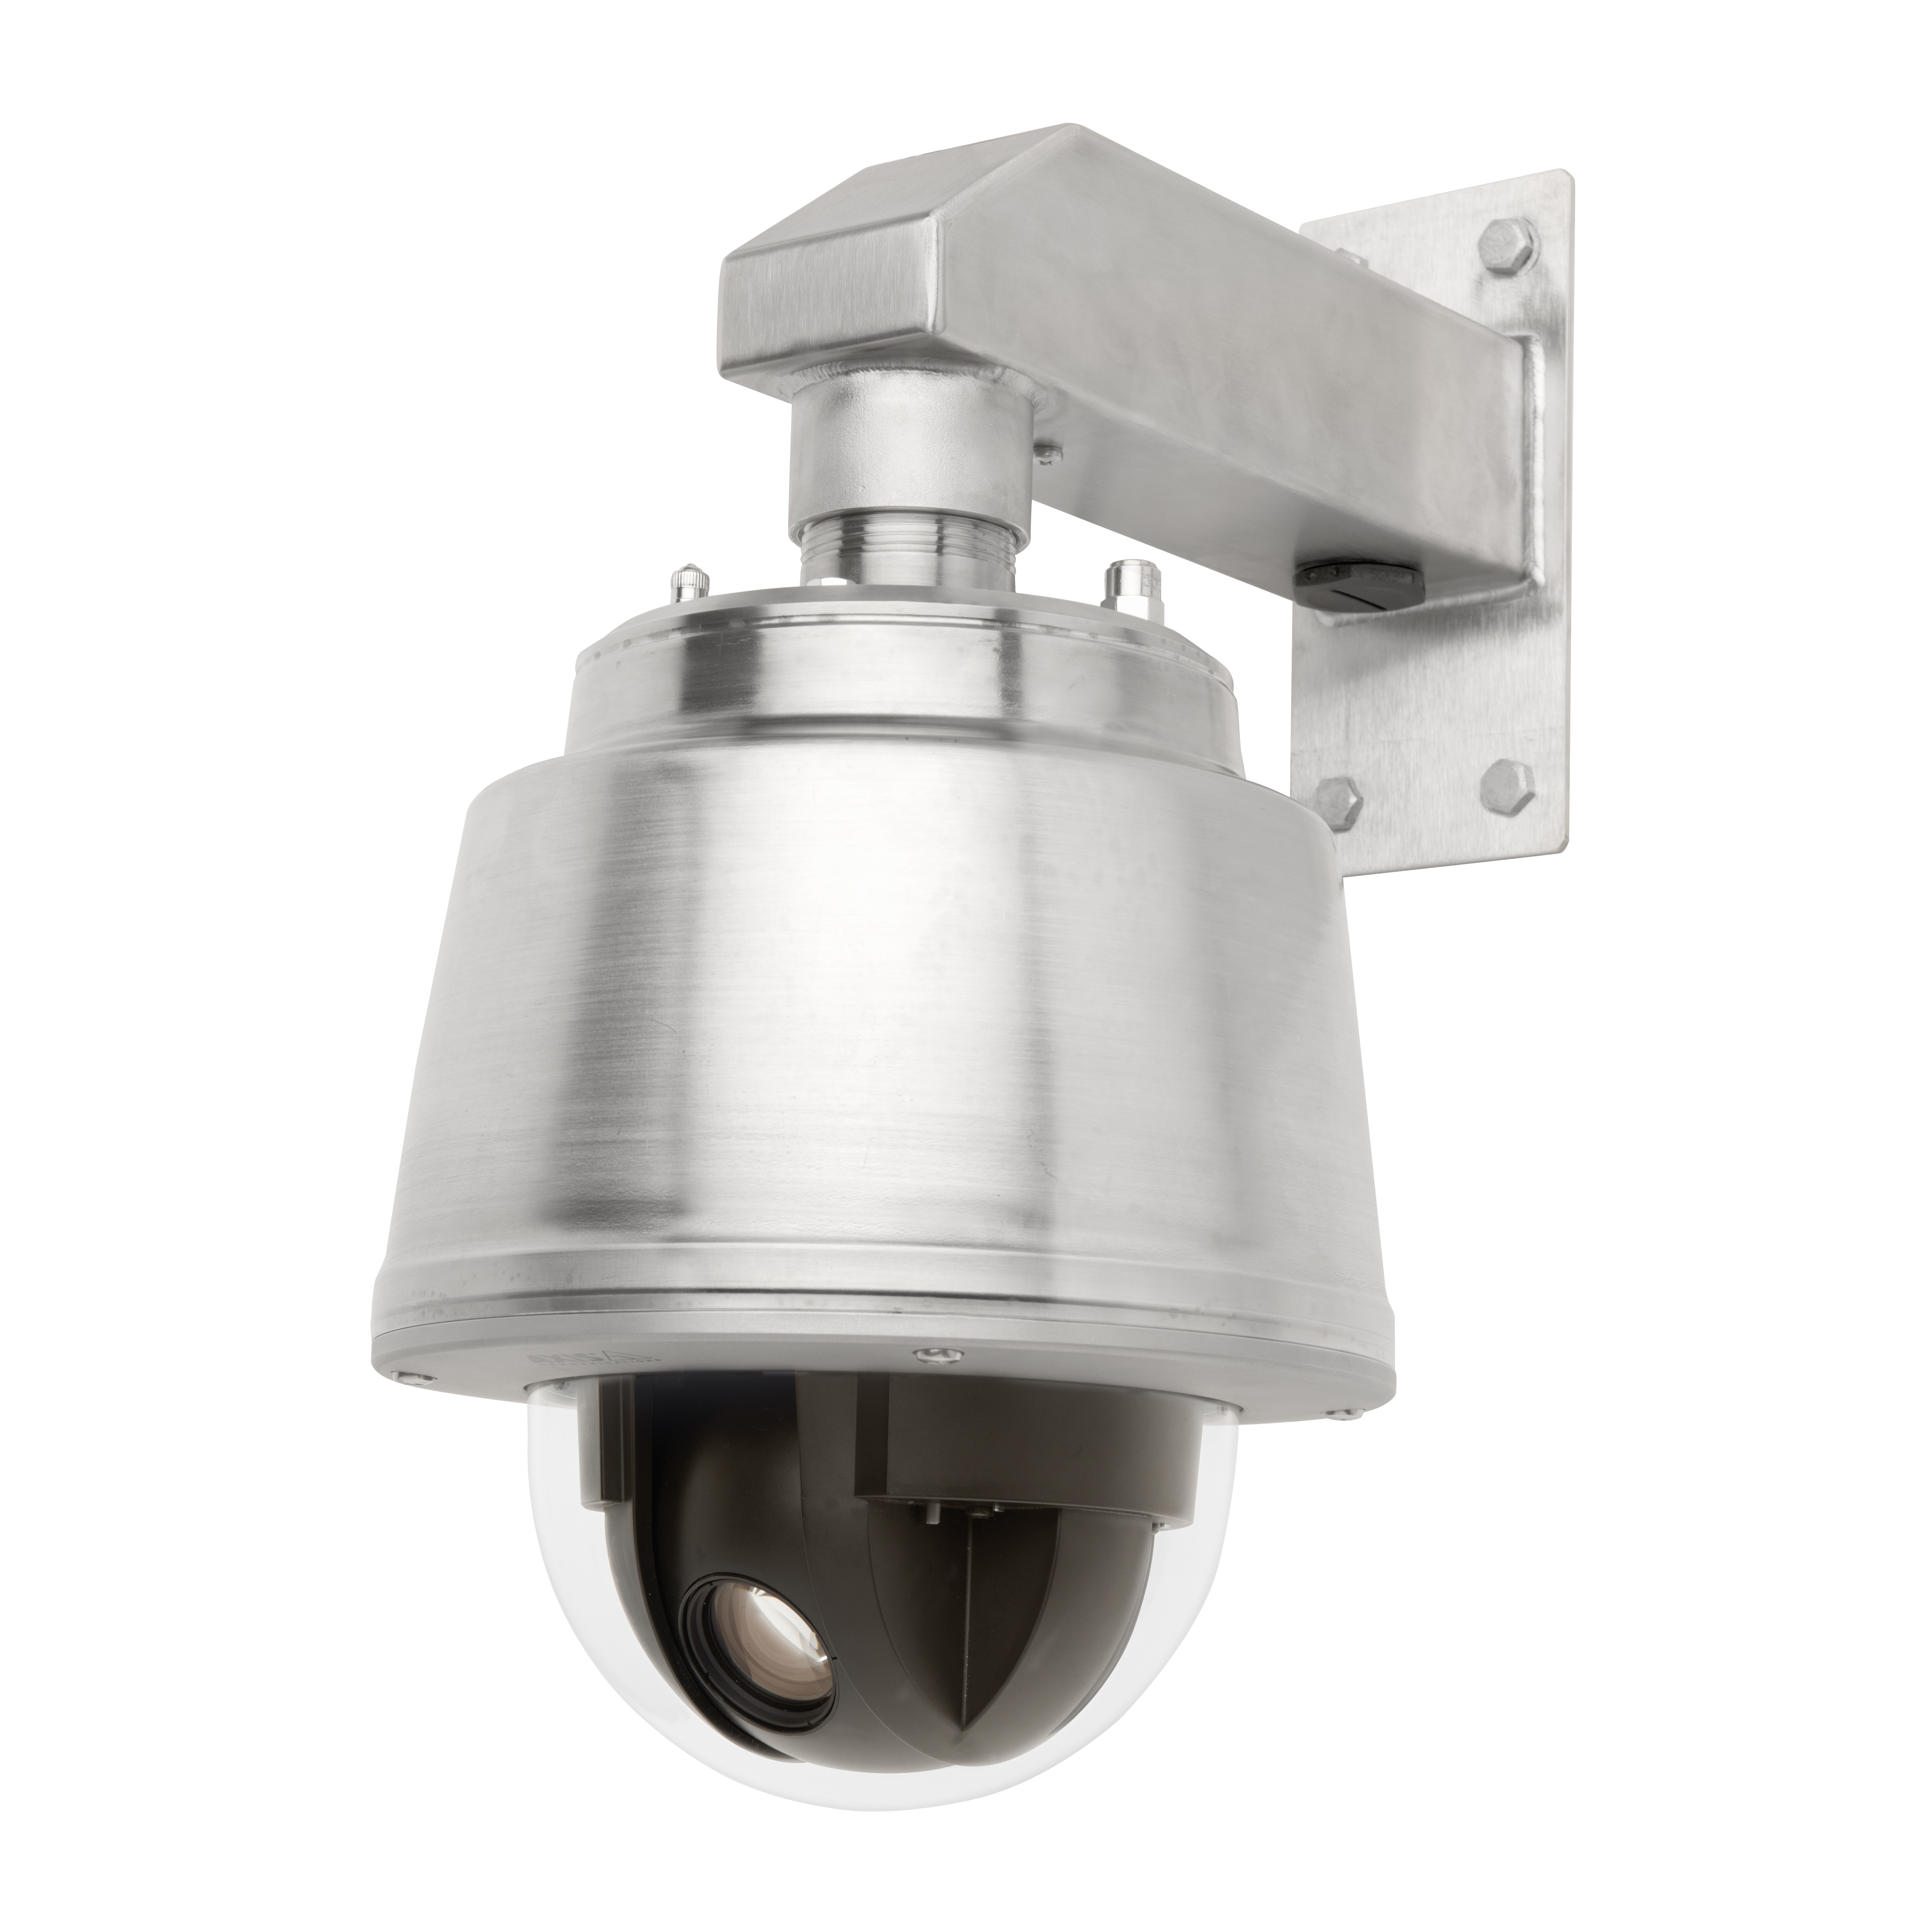 Axis Launches Nitrogen-pressurized Stainless Steel PTZ Dome